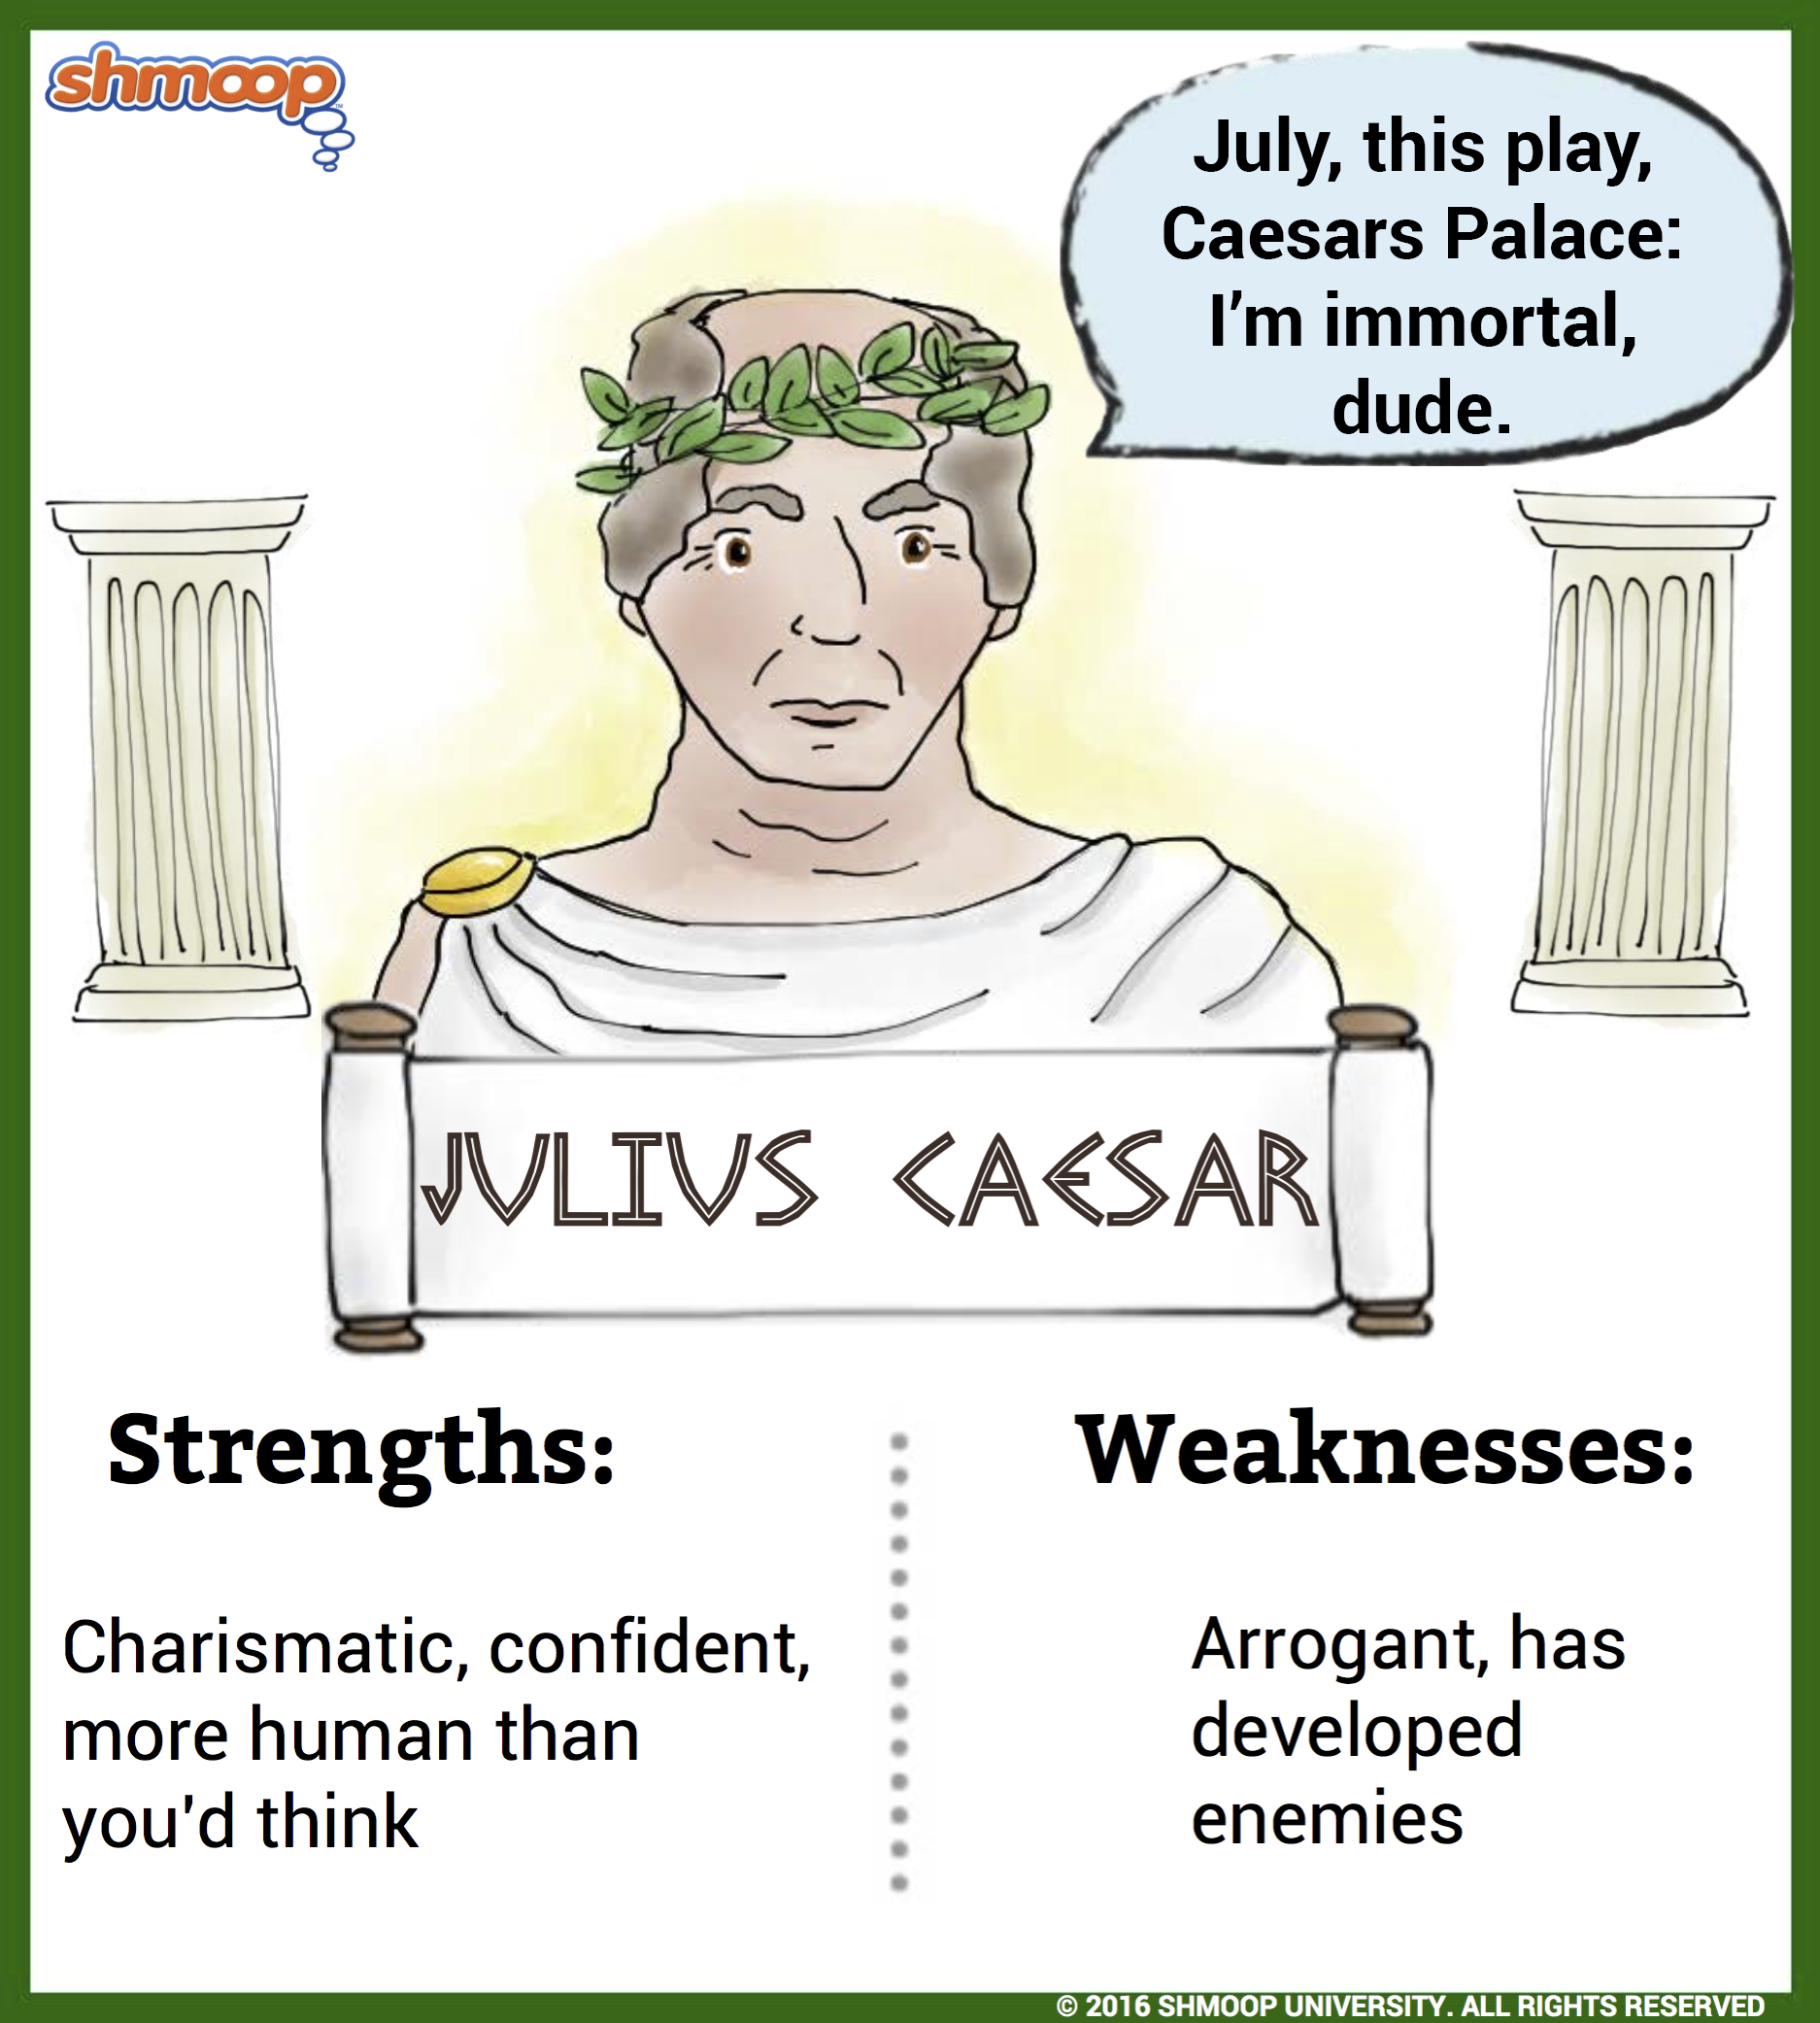 william shakespeares julius caesar essays